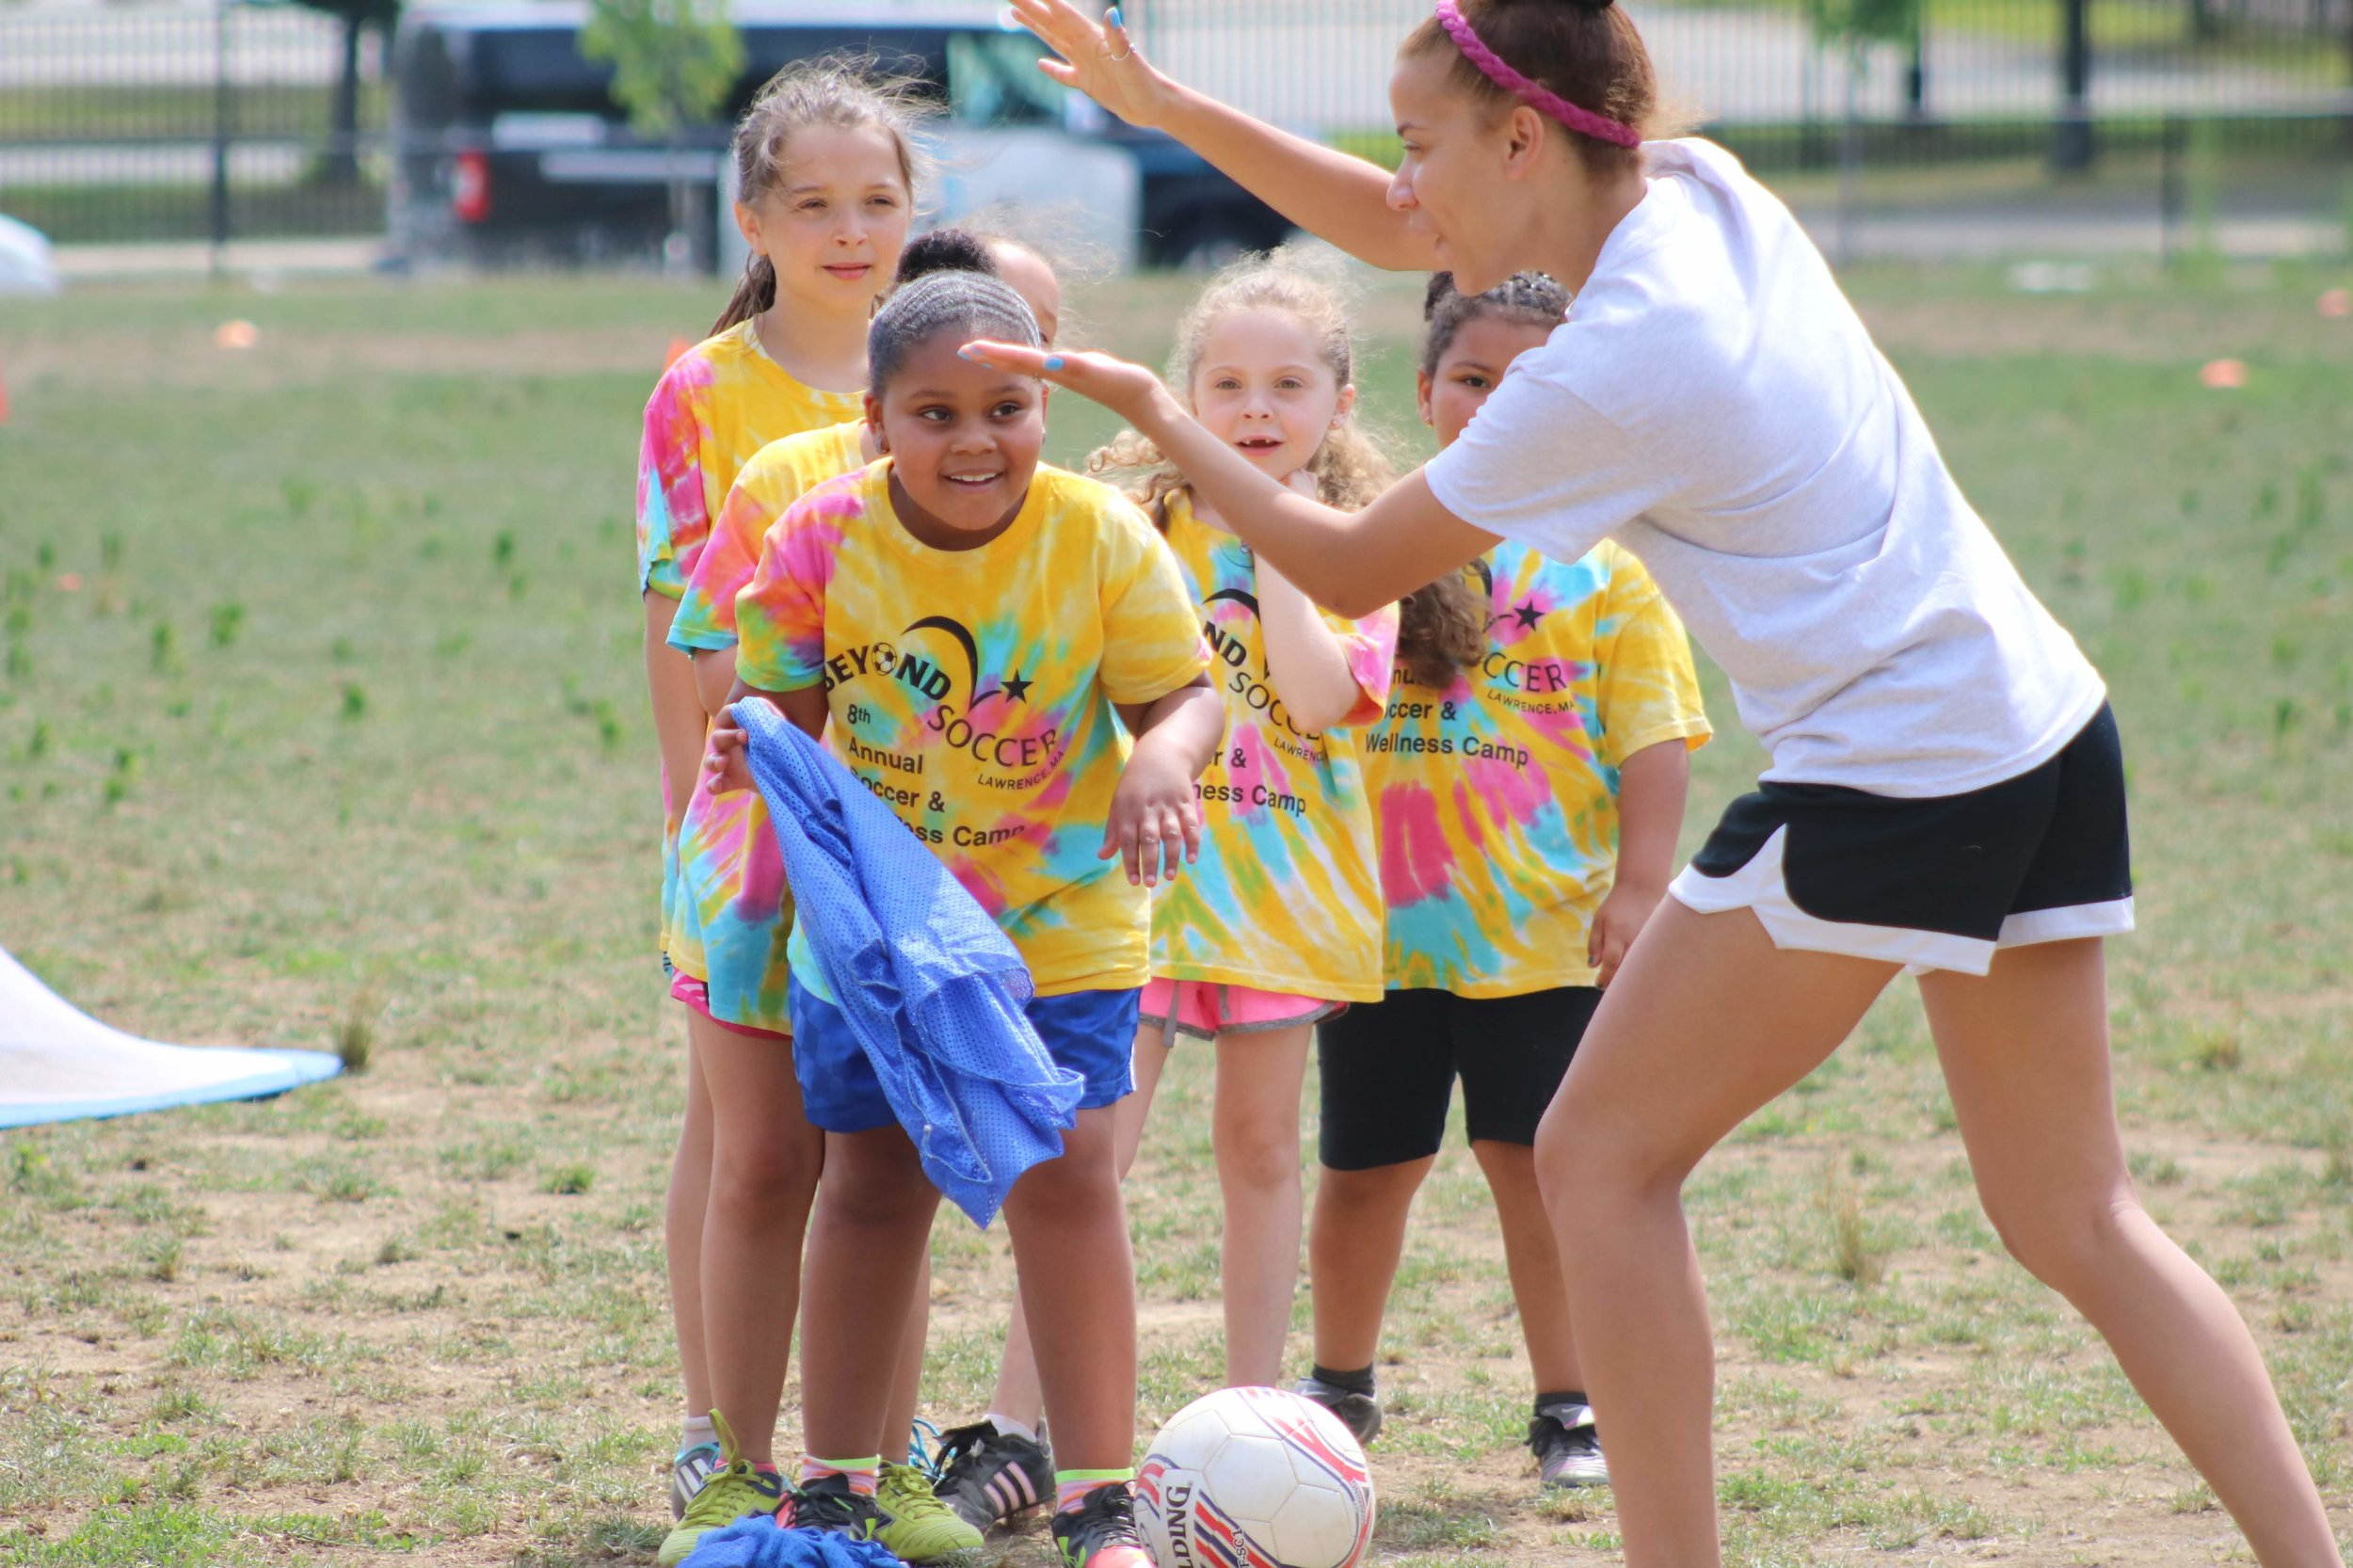 Pictures of Coach Mentor Oriagna, who started with us on our first girls team, the Wolves, instructing girls during our Annual Soccer & Wellness Camp in 2018.